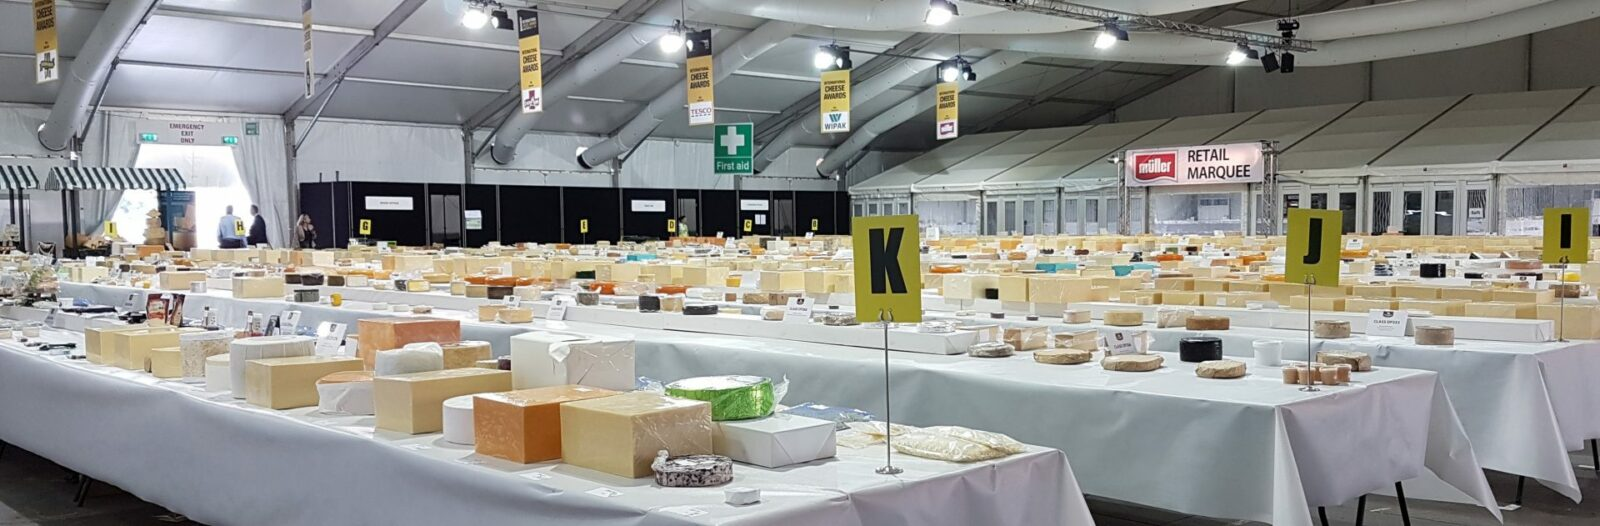 Image from international cheese awards 2017